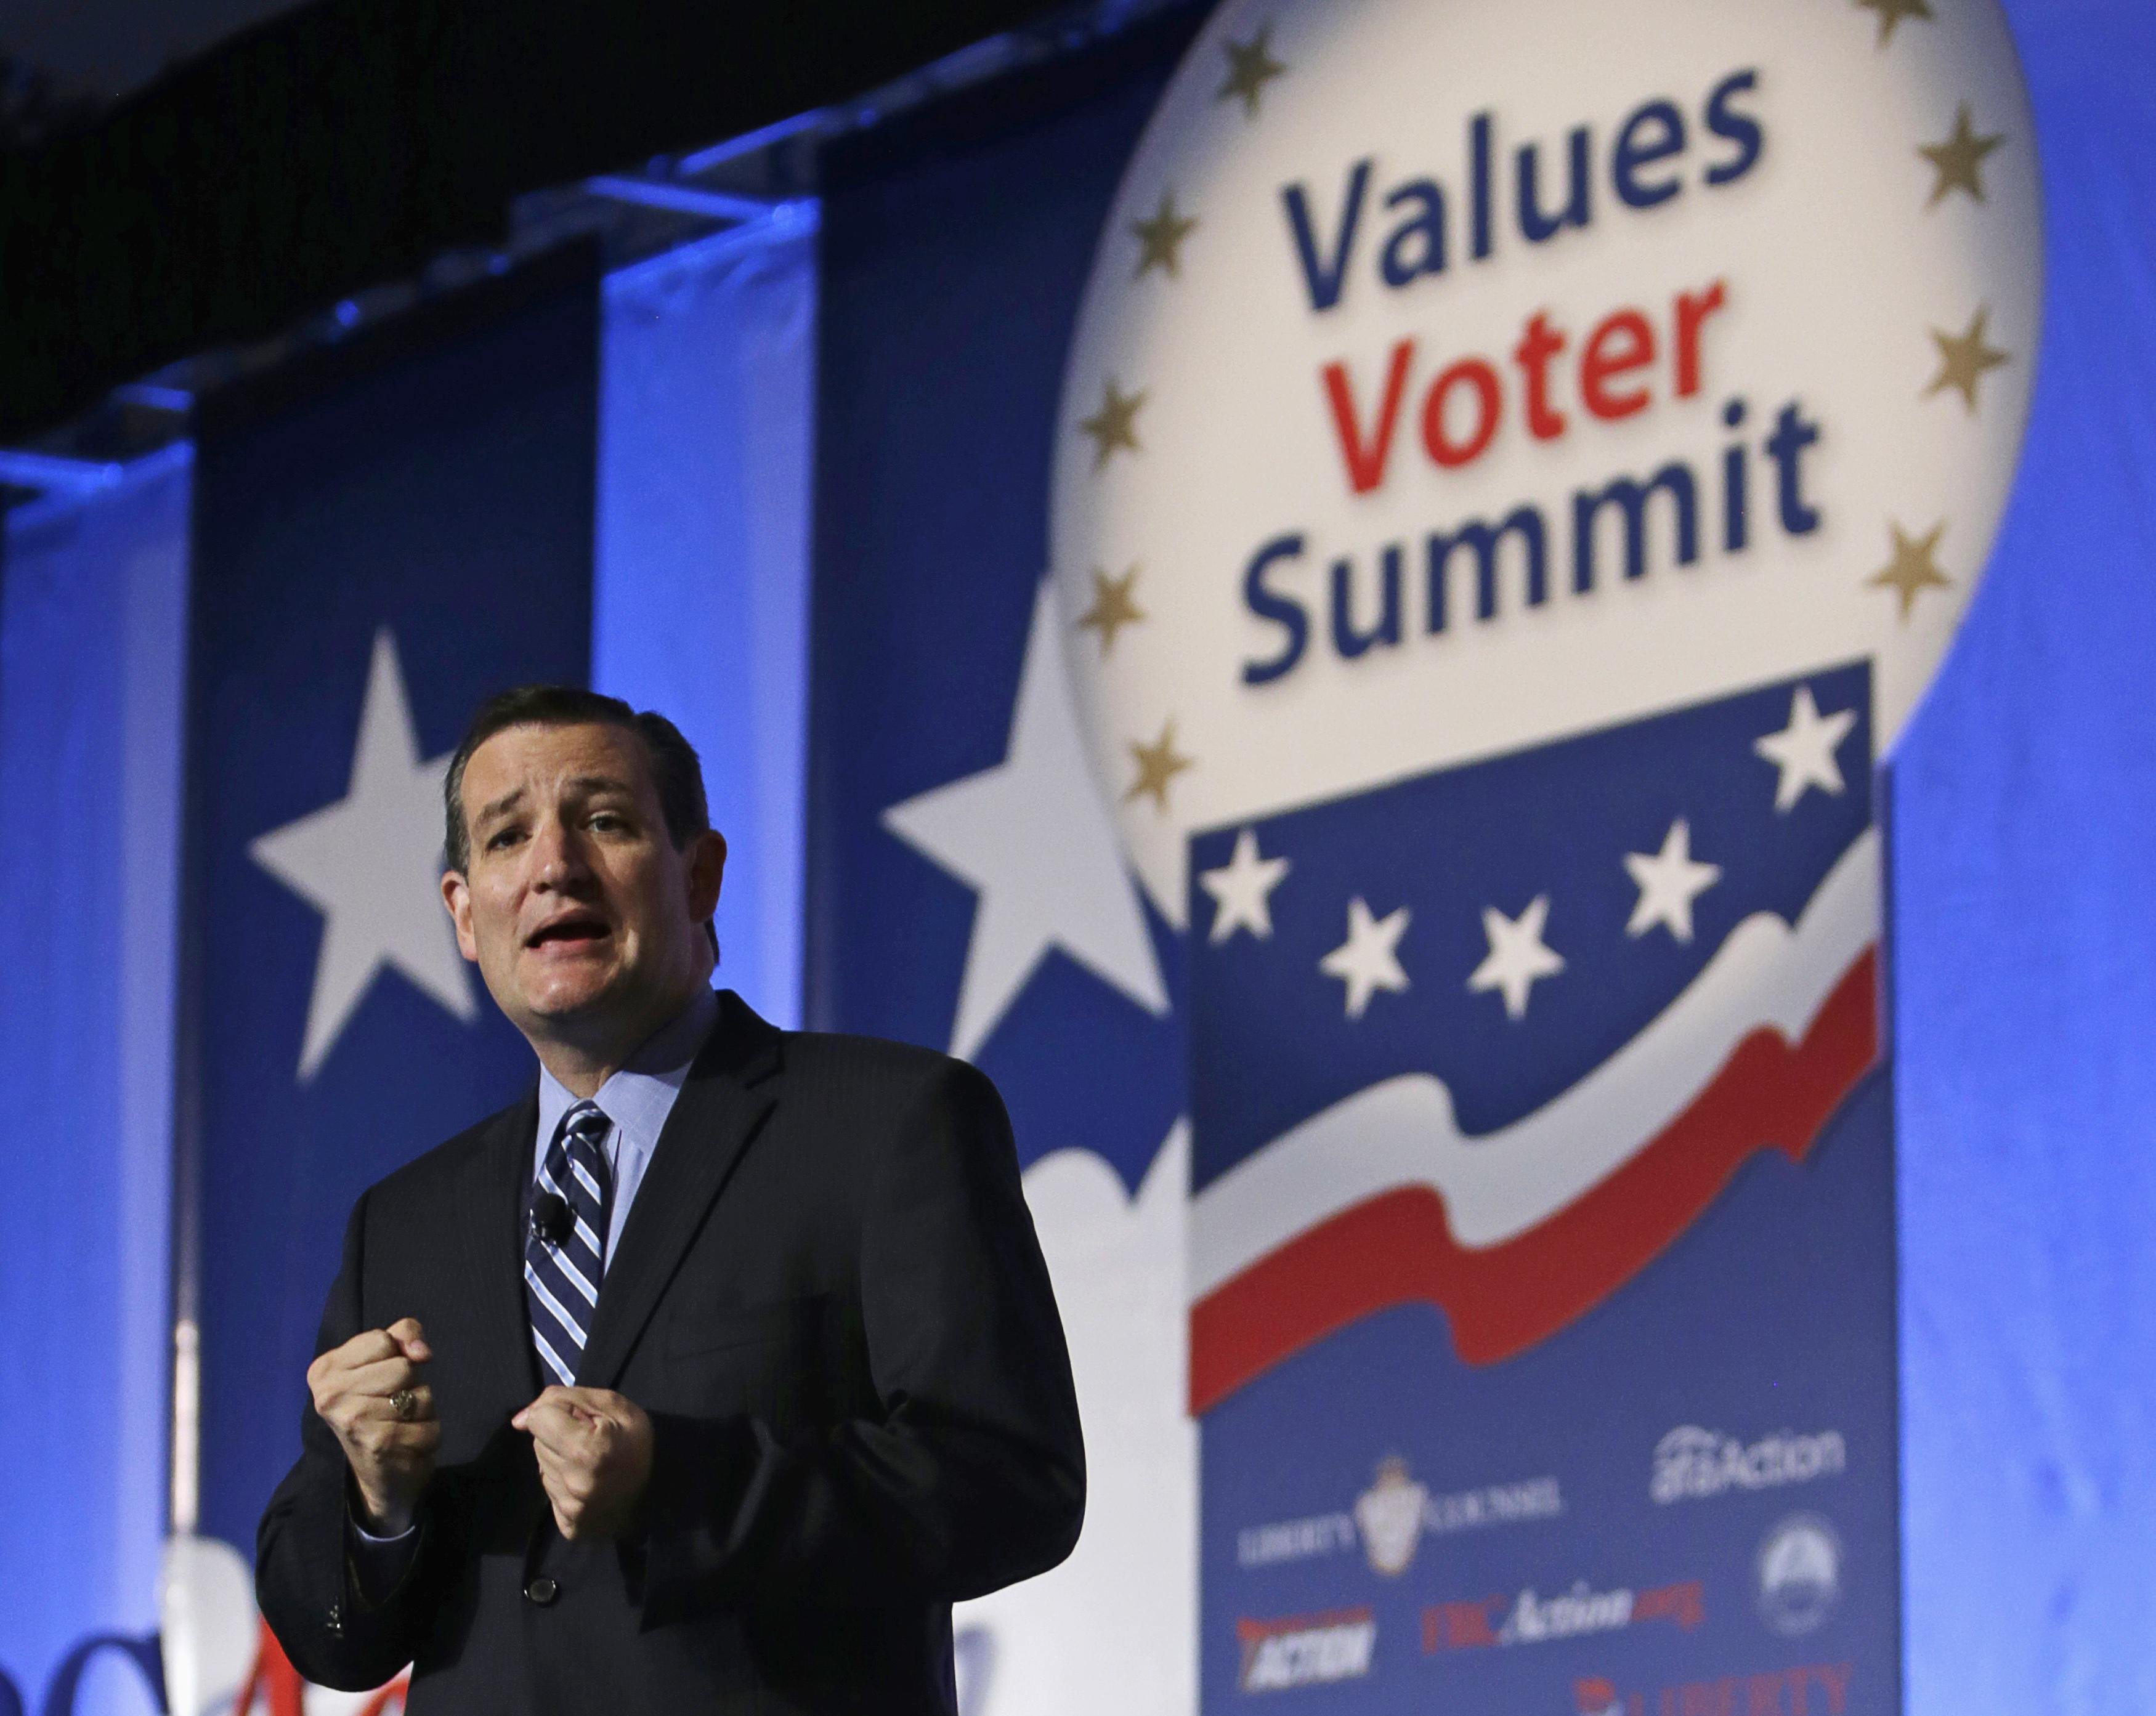 U.S. Senator Ted Cruz (R-TX) delivers his remarks at the morning plenary session of the Values Voter Summit in Washington on Sept. 26, 2014.